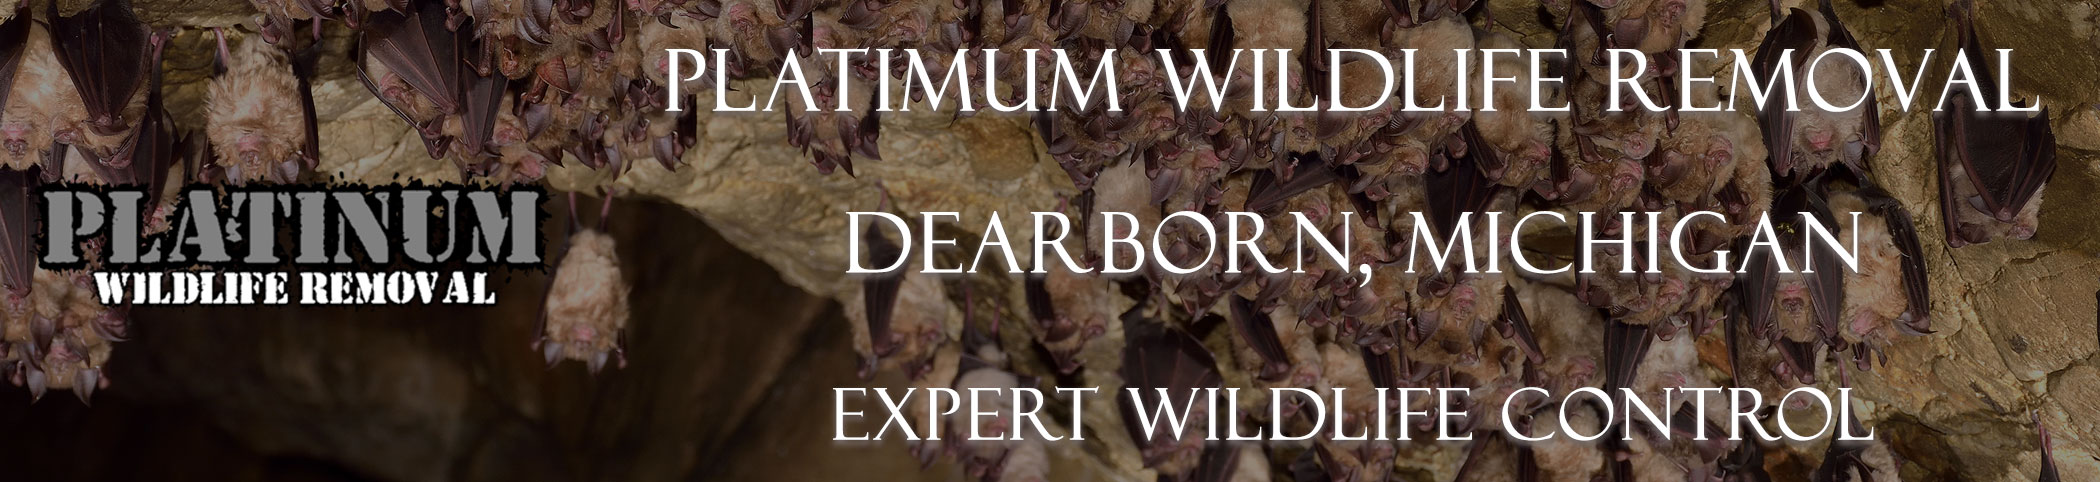 Dearborn-Platinum-Wildlife-Removal-michgan